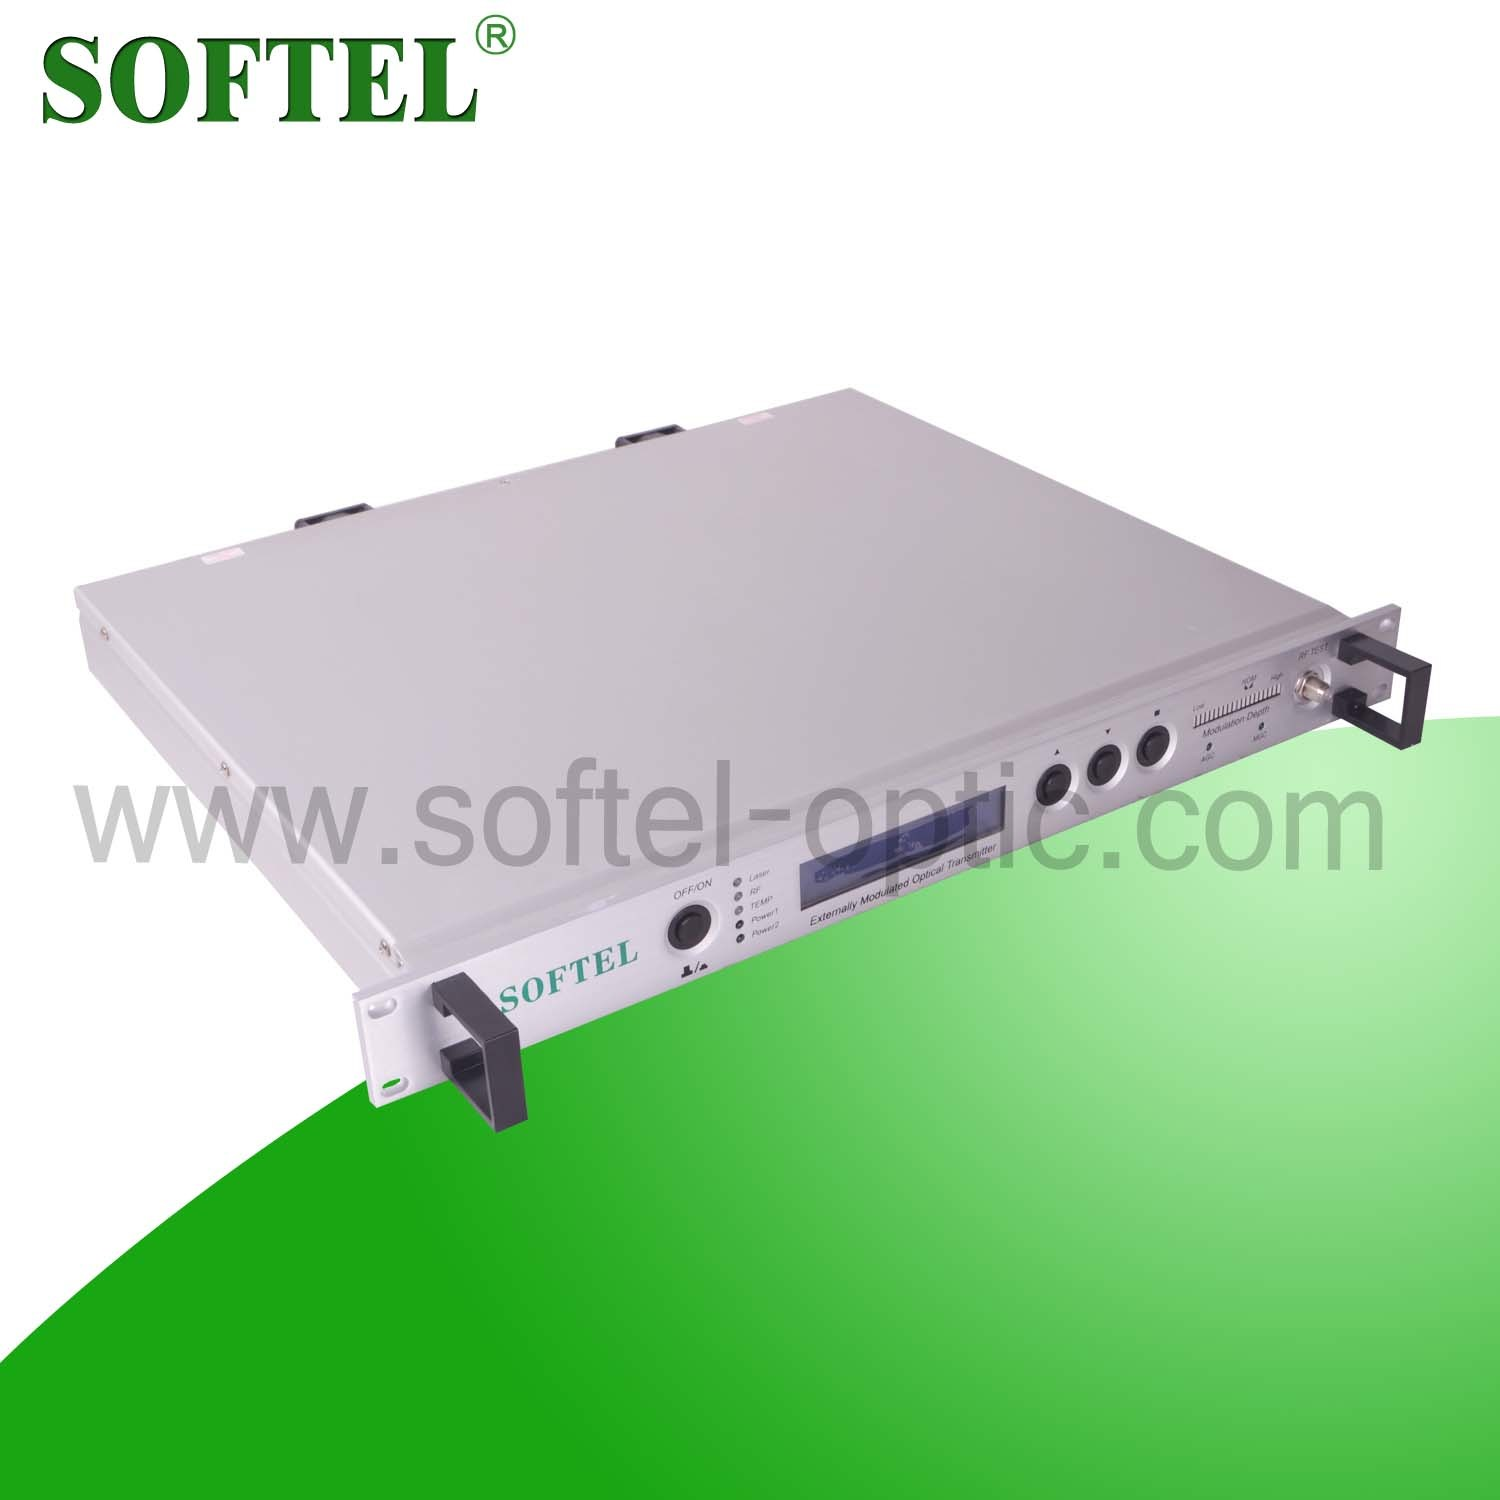 2013 Best Seller Equipment Fiber Optical 1550nm Transmitter